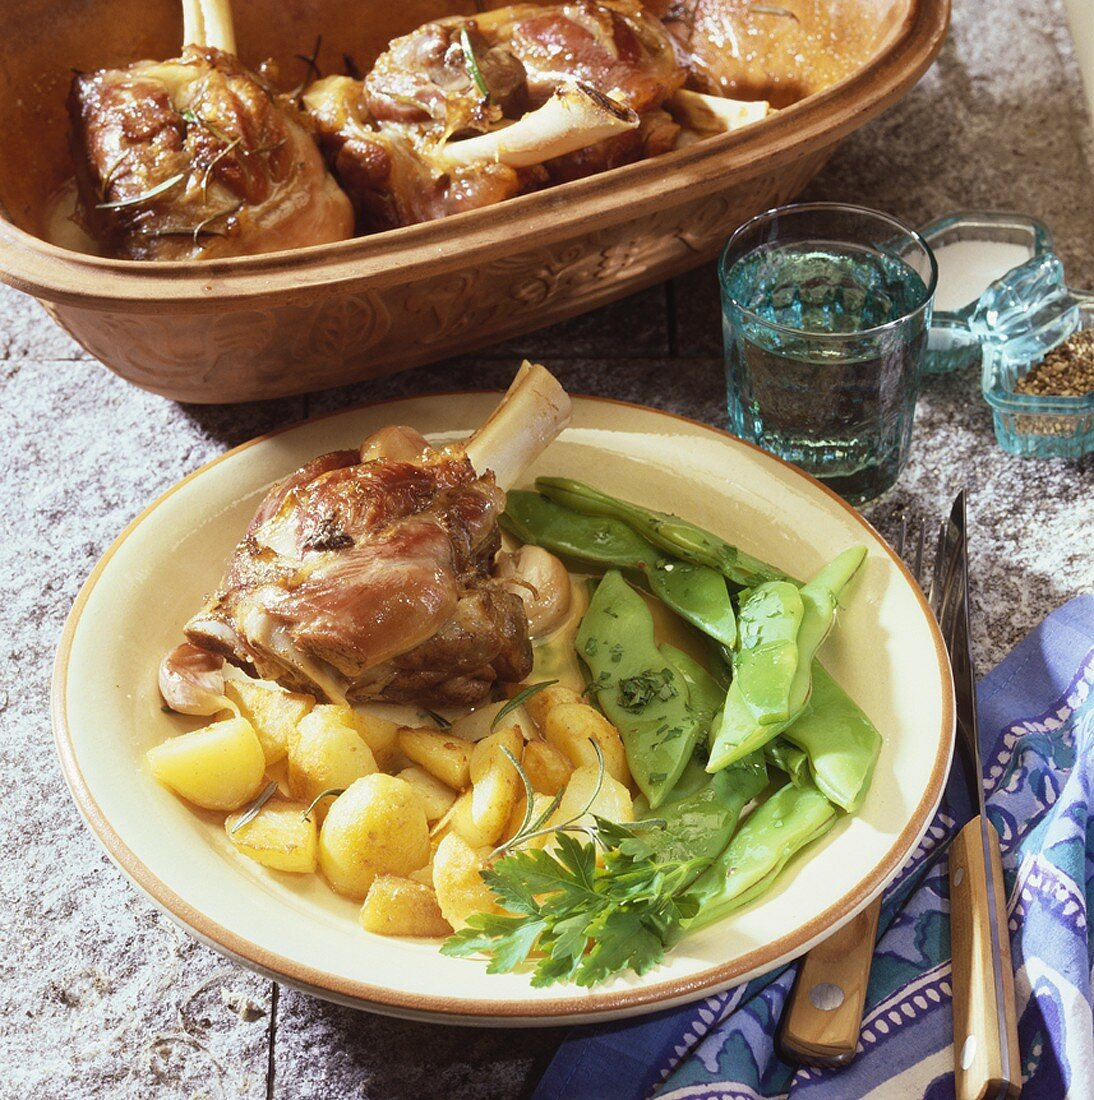 Lamb shanks cooked in Römertopf with potatoes and beans